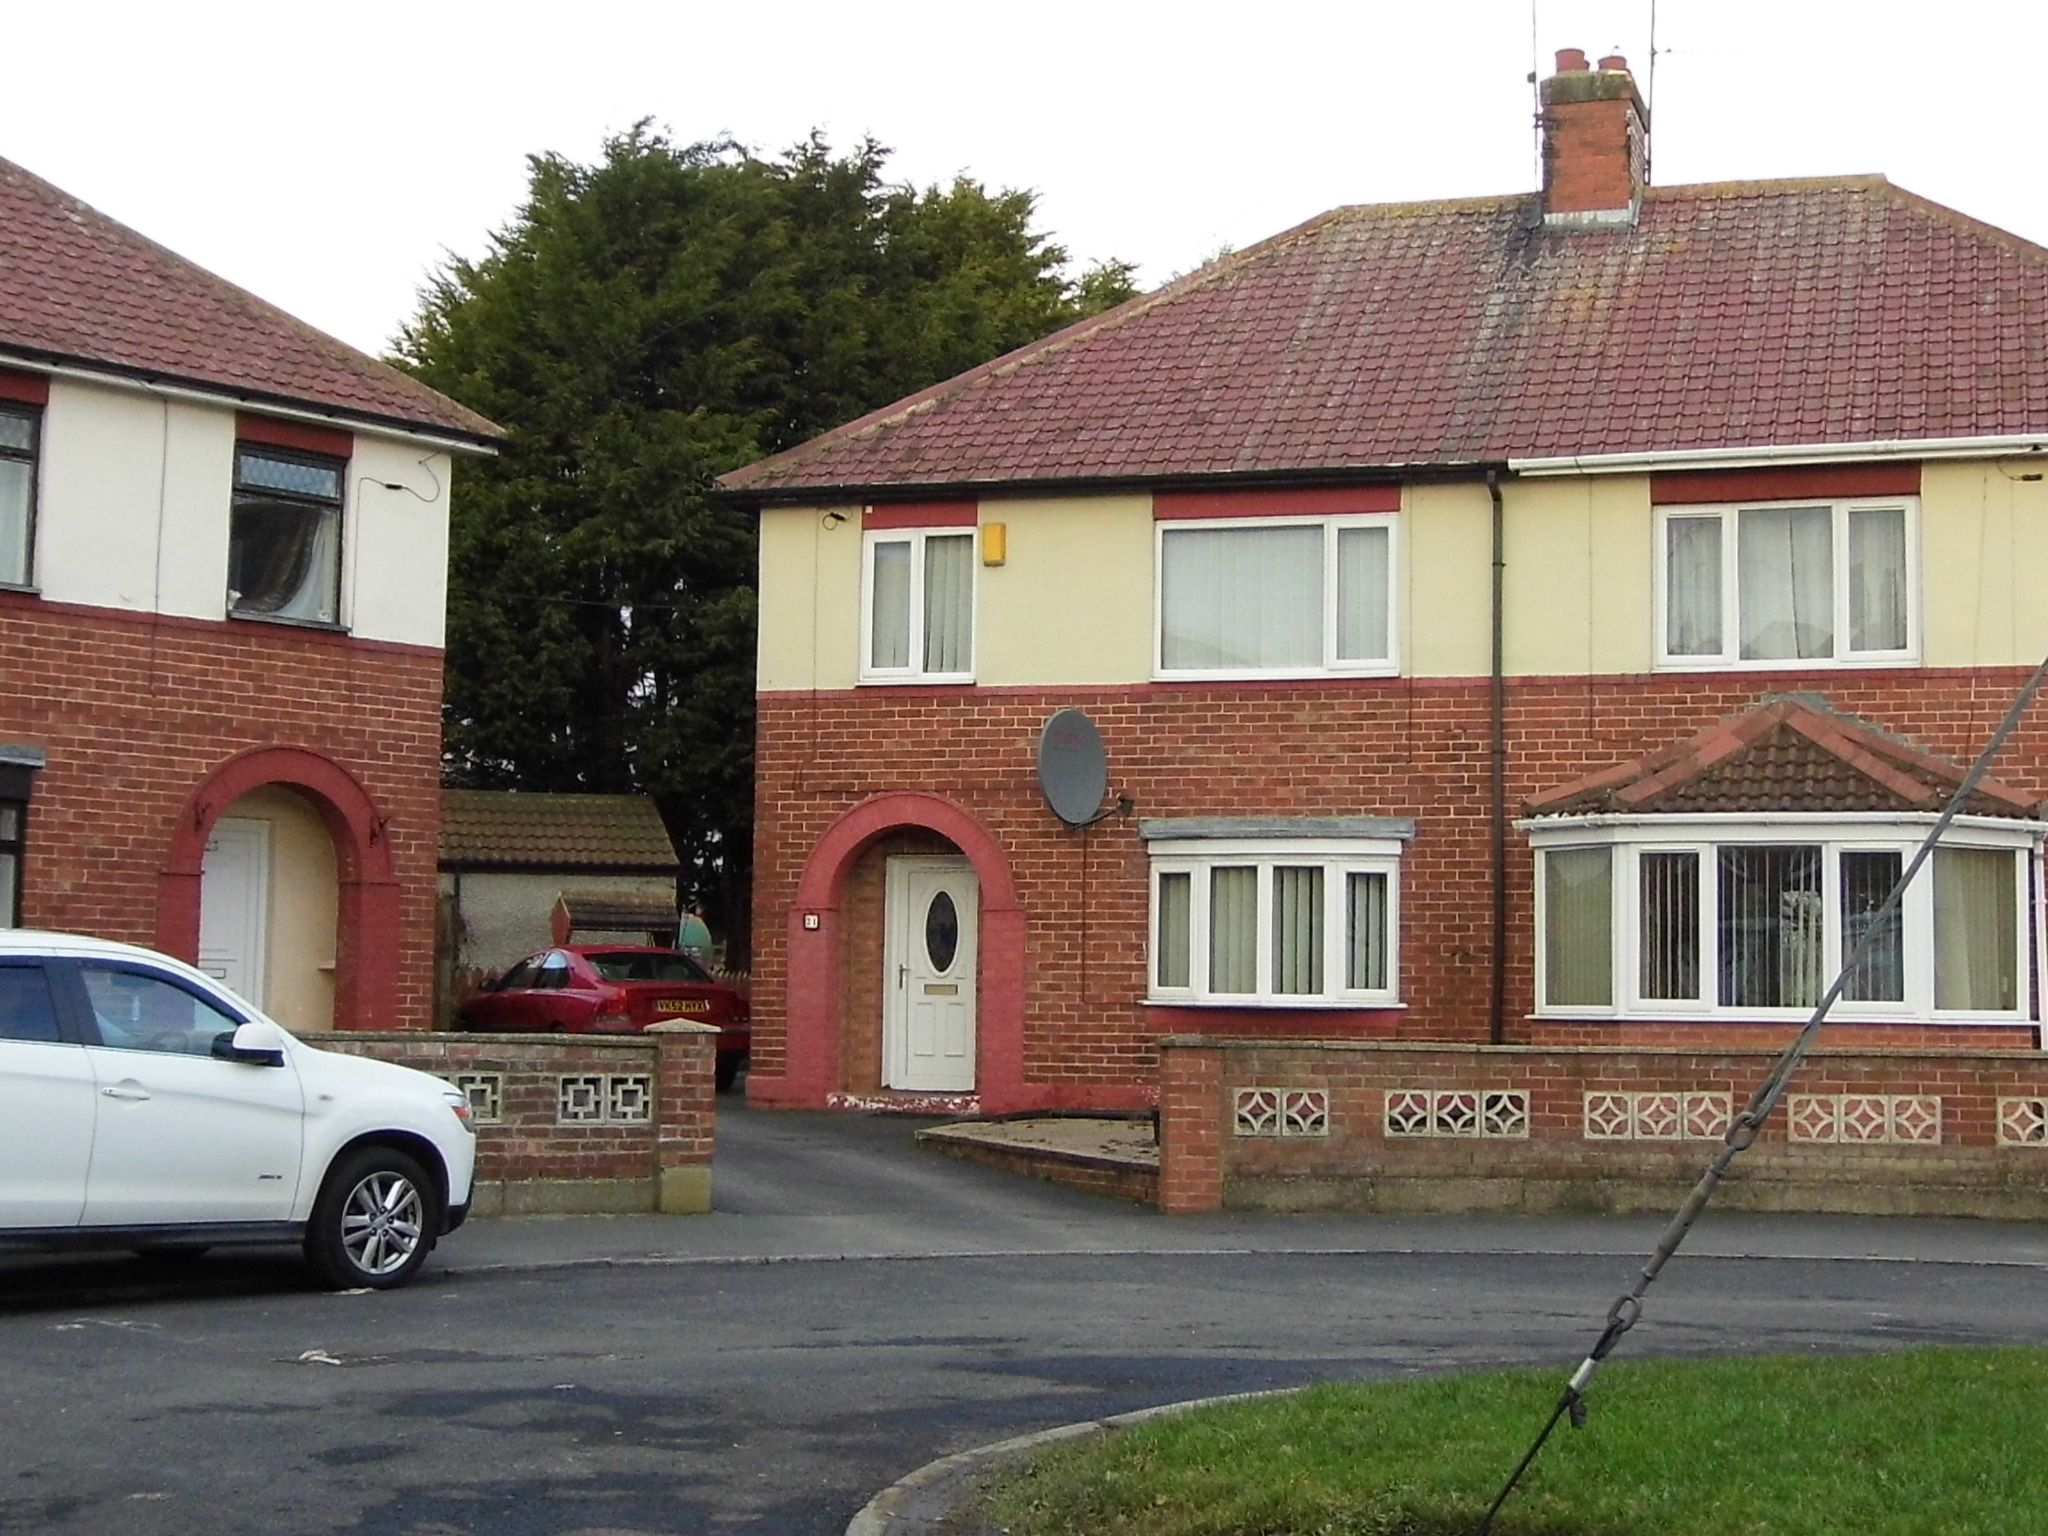 3 bedroom semi-detached house For Sale in Bishop Auckland - Photograph 1.